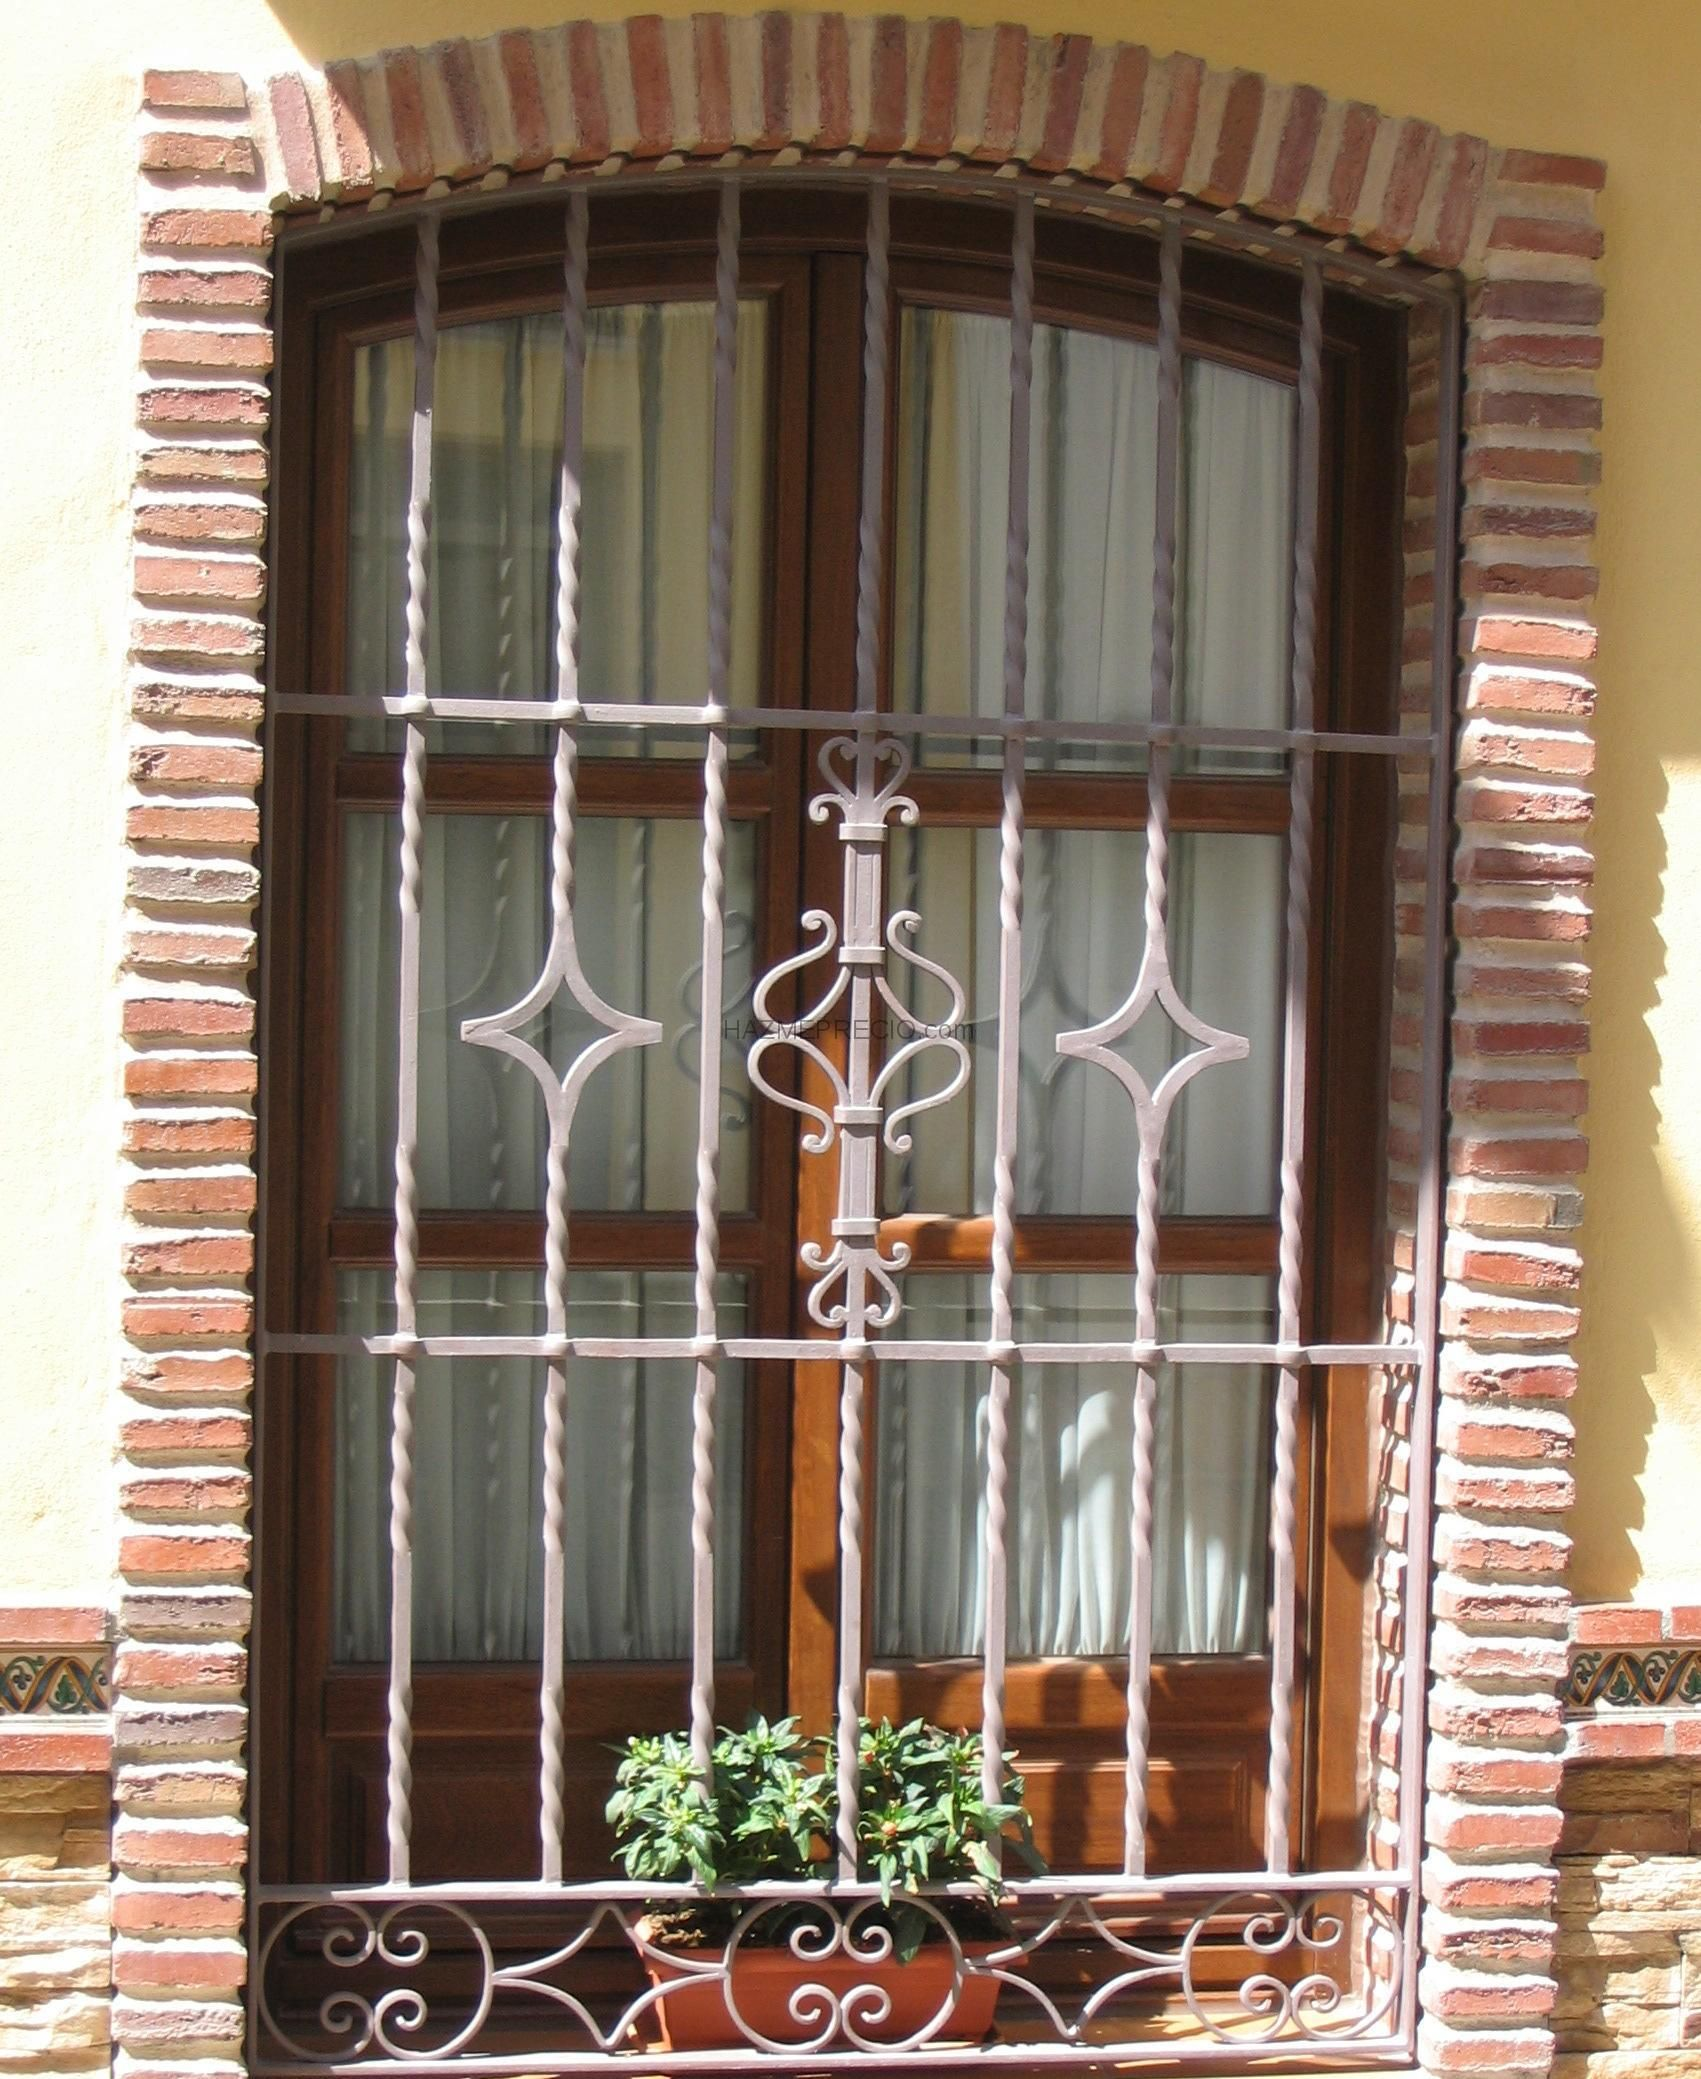 Rejas Artisticas For The Home Pinterest Rejas Ventana Y  ~ Ventanas De Seguridad Para Casas